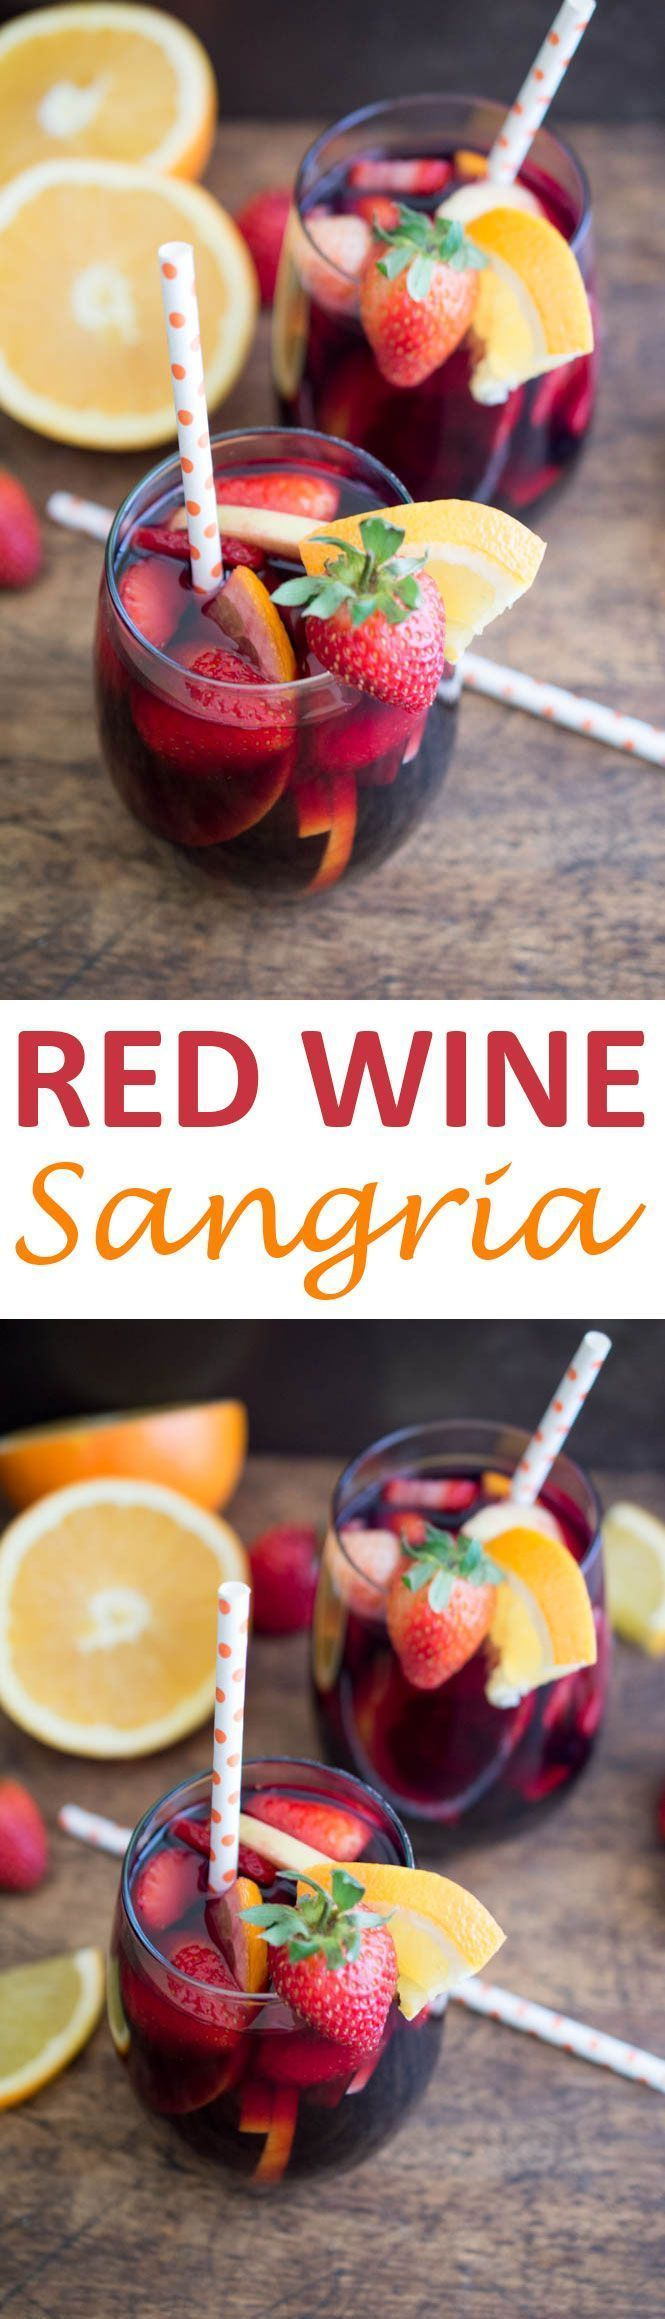 Simple and Fruity Red Wine Sangria. Made with fresh fruit, red wine, brandy and pomegranate juice. Perfect Fall or Winter cocktail. | chefsavvy.com